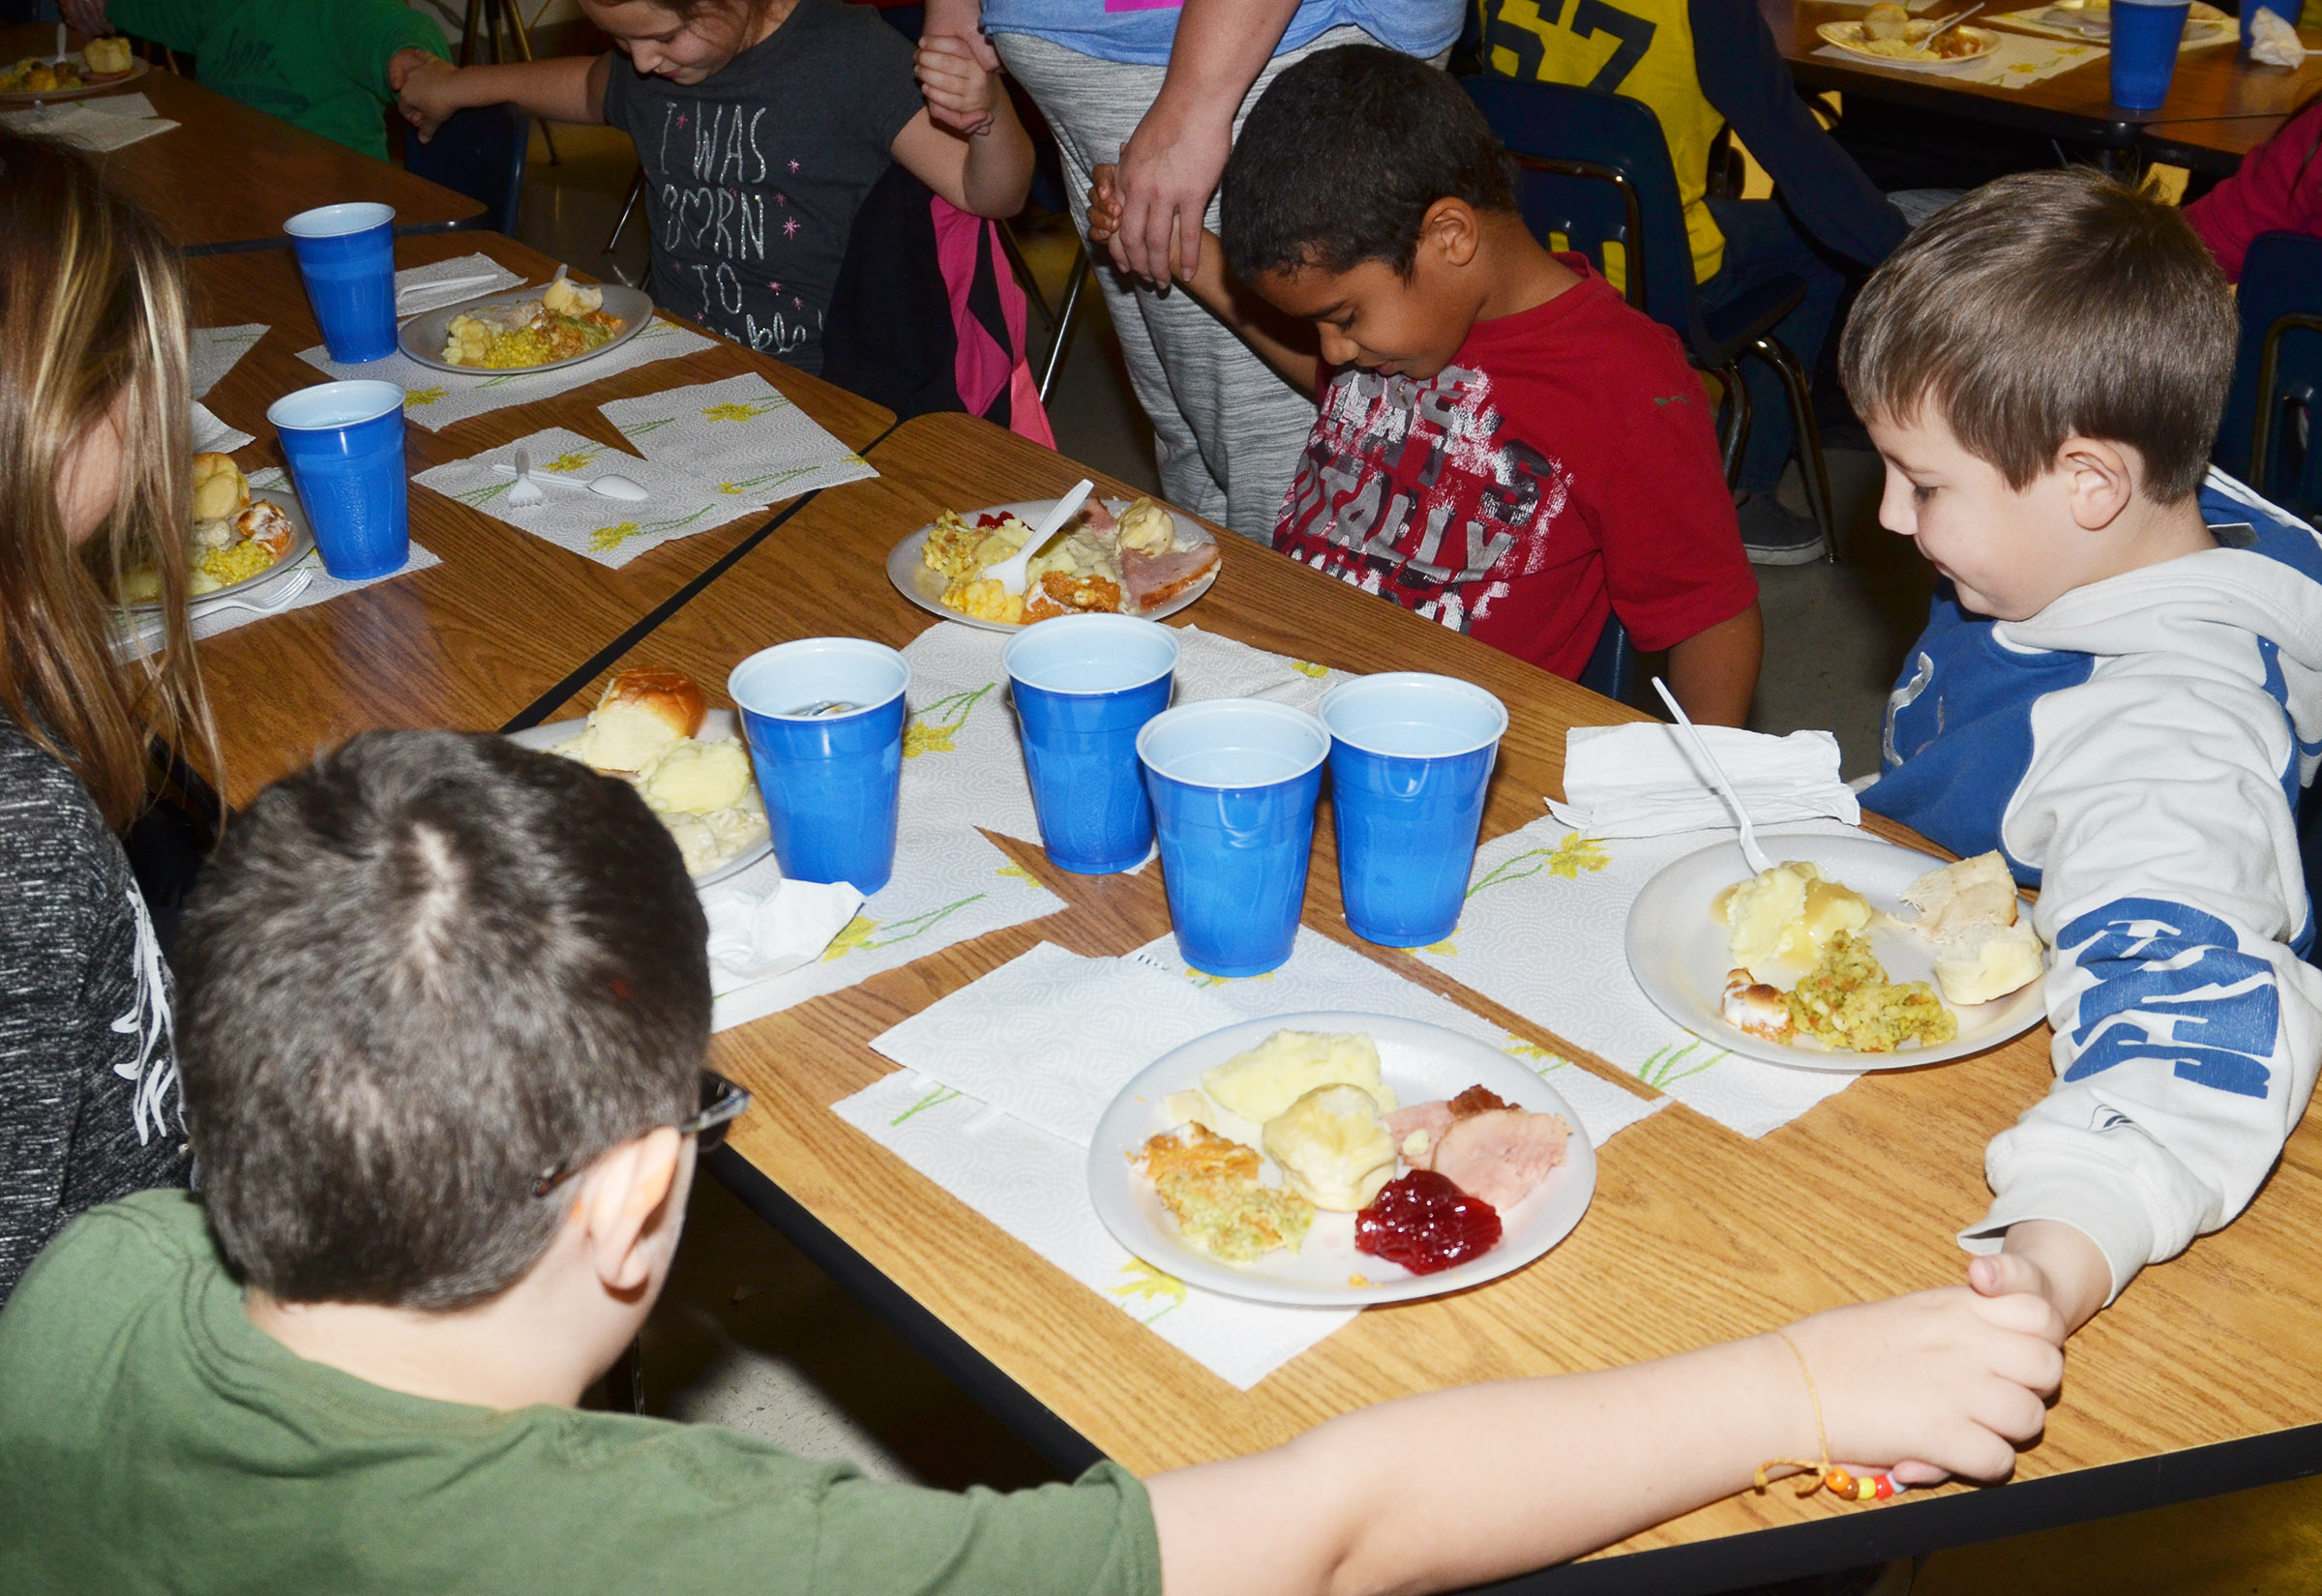 CES third-graders in Hannah Jones's class pray together before enjoying their Thanksgiving feast.